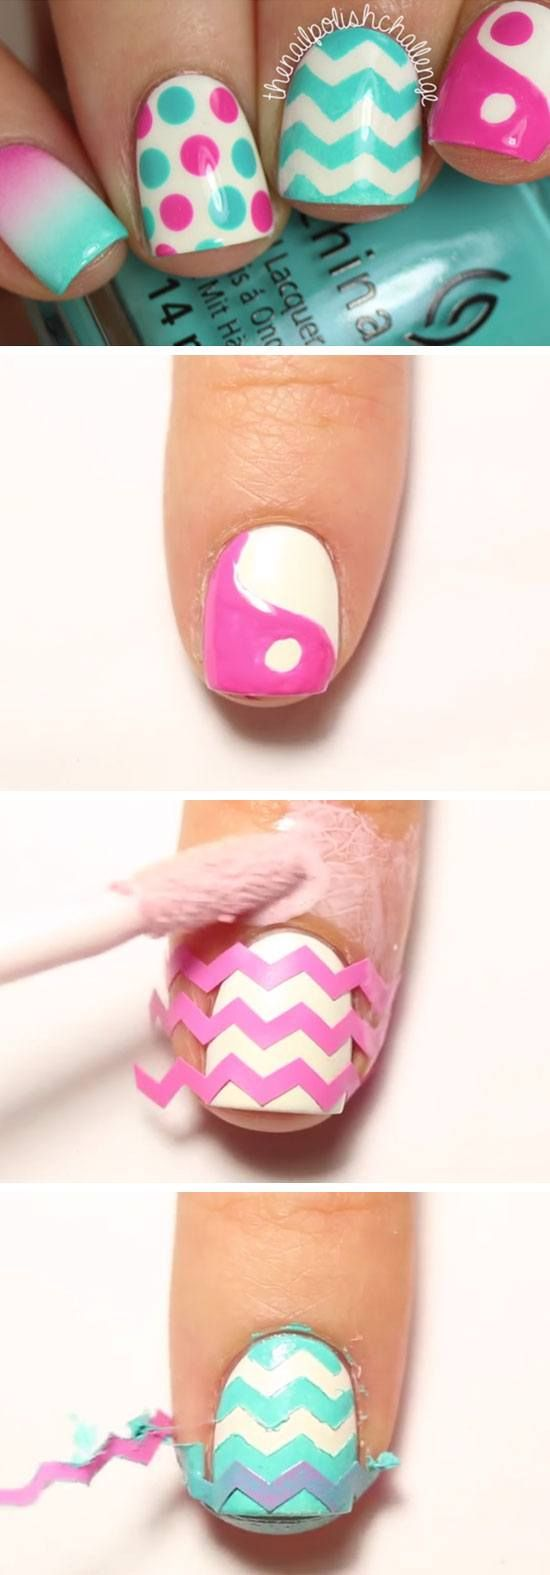 Teen Pedicure Stock Image Image Of Brunette Makeup: Best 20+ Nail Manicure Ideas On Pinterest